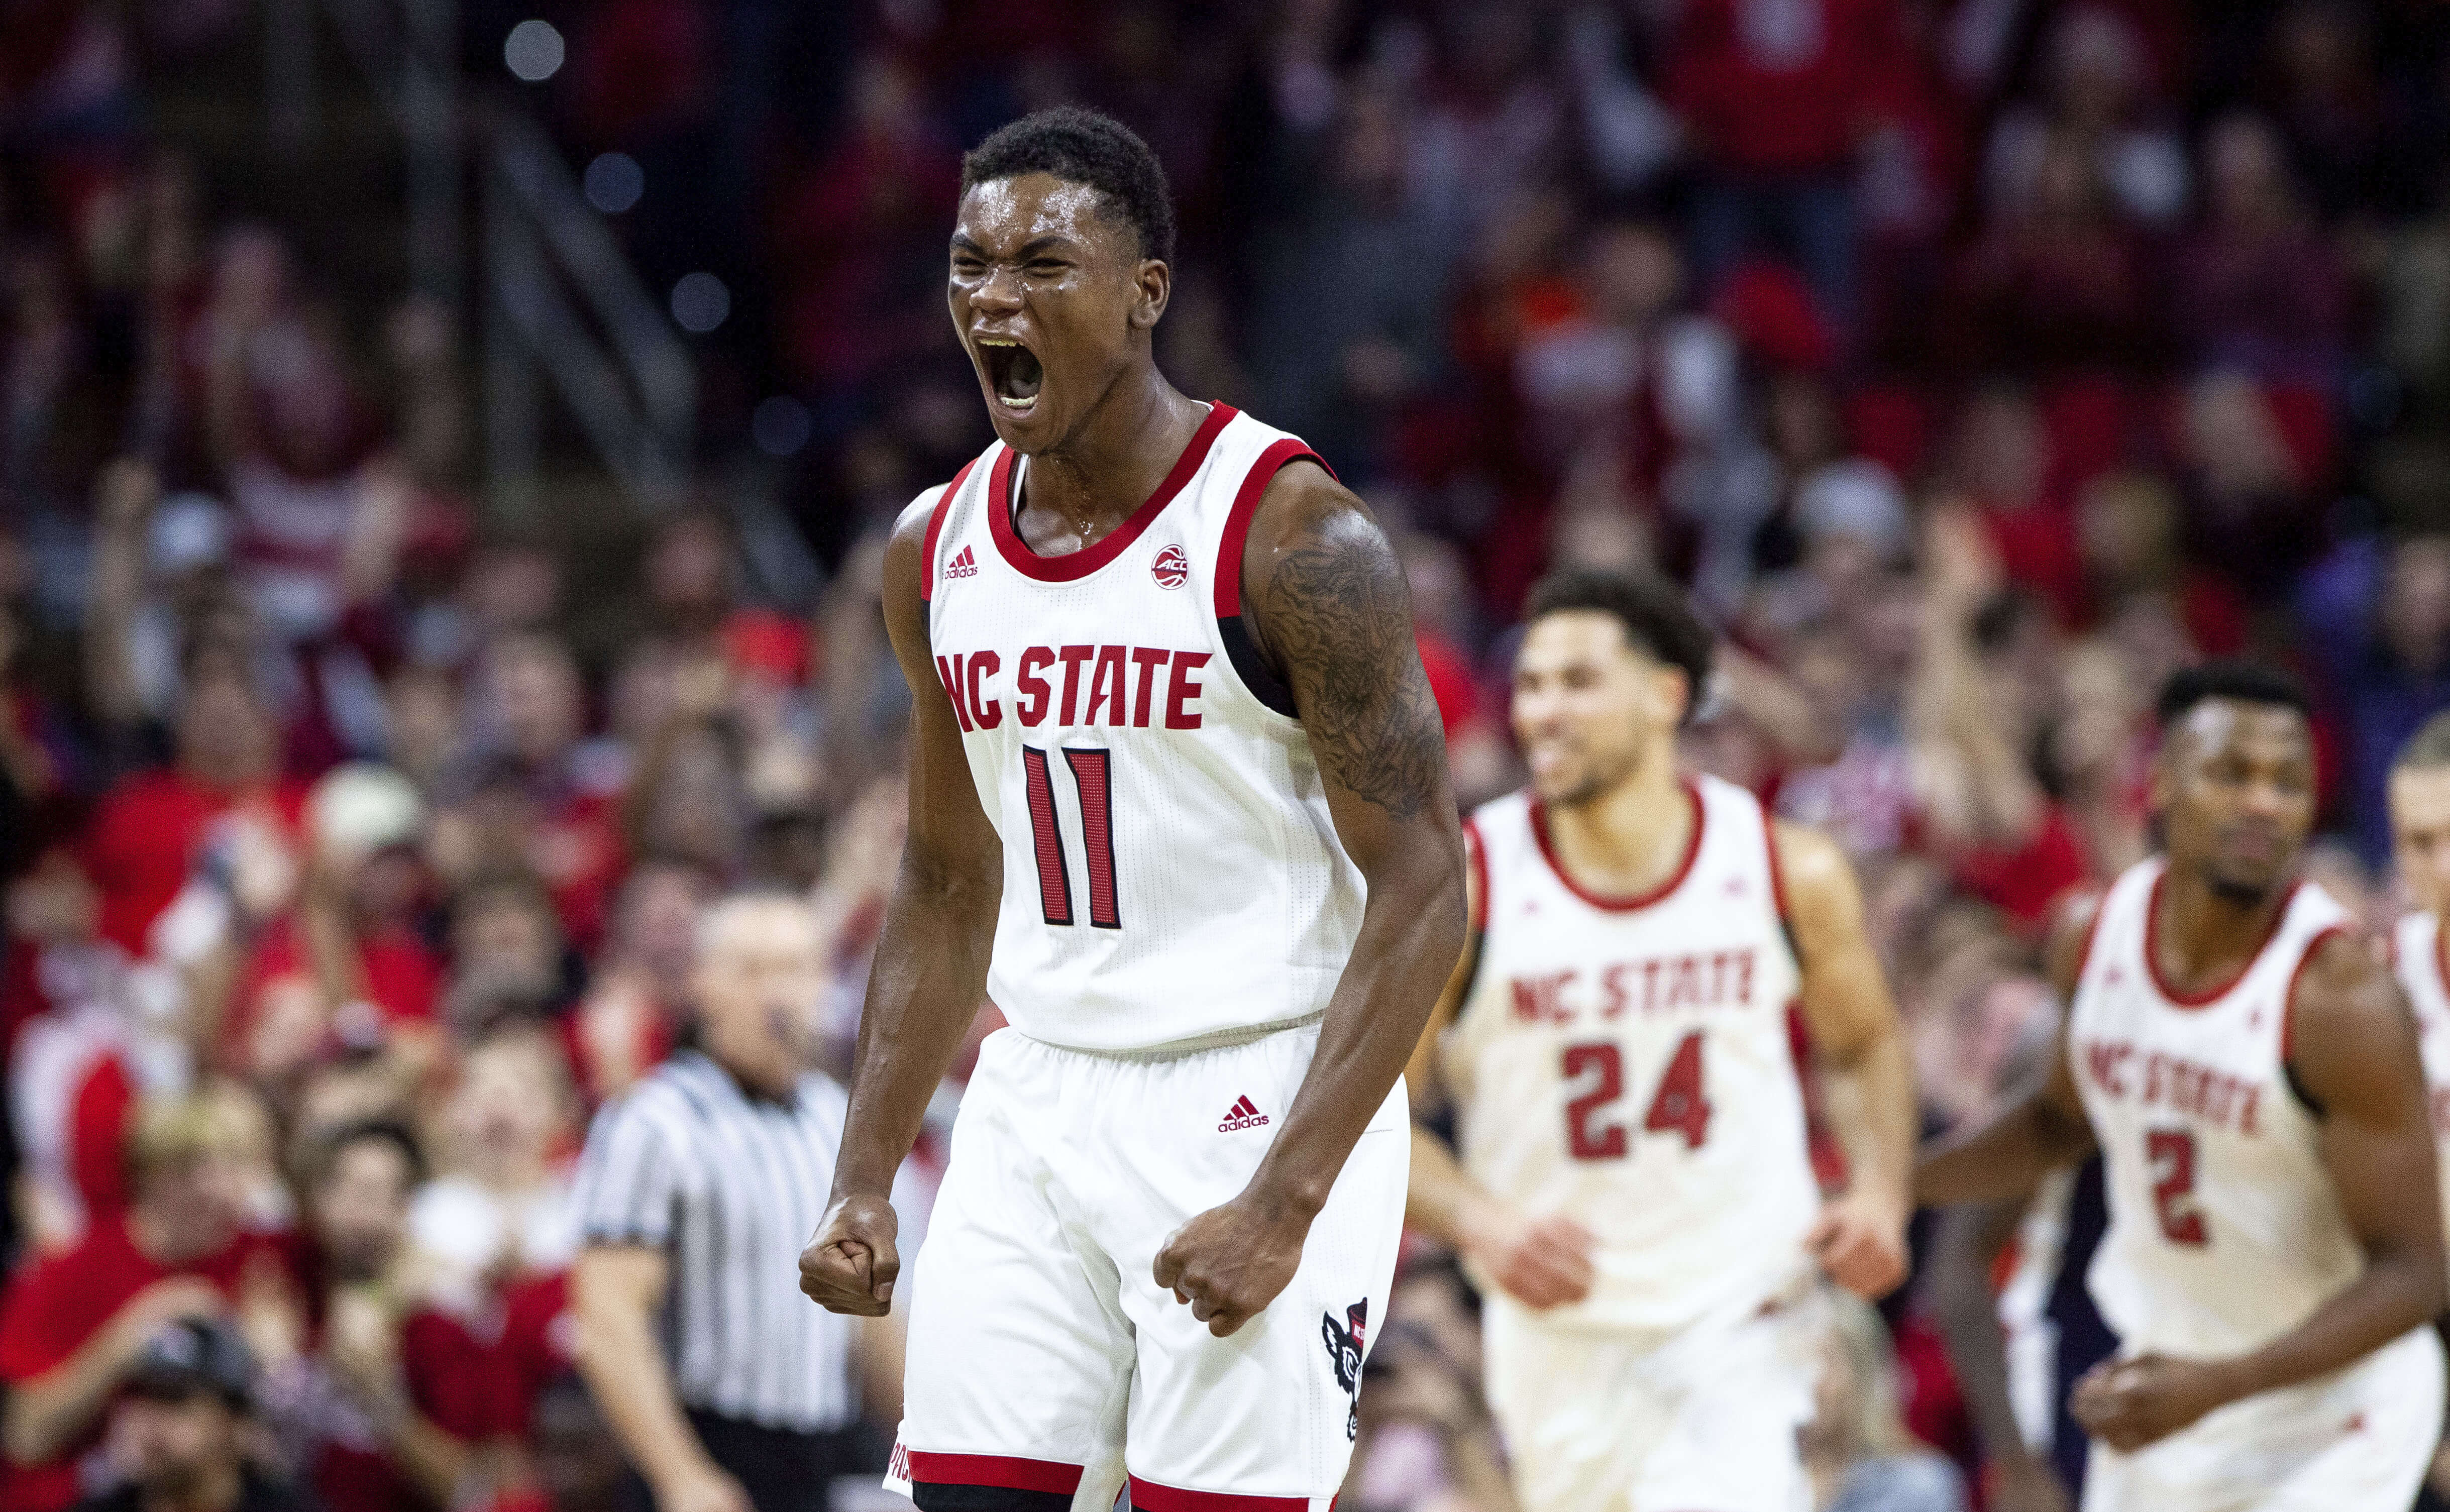 North Carolina State's Markell Johnson (11) reacts after hitting a 3-point shot during the second half against Auburn in Raleigh on Wednesday.